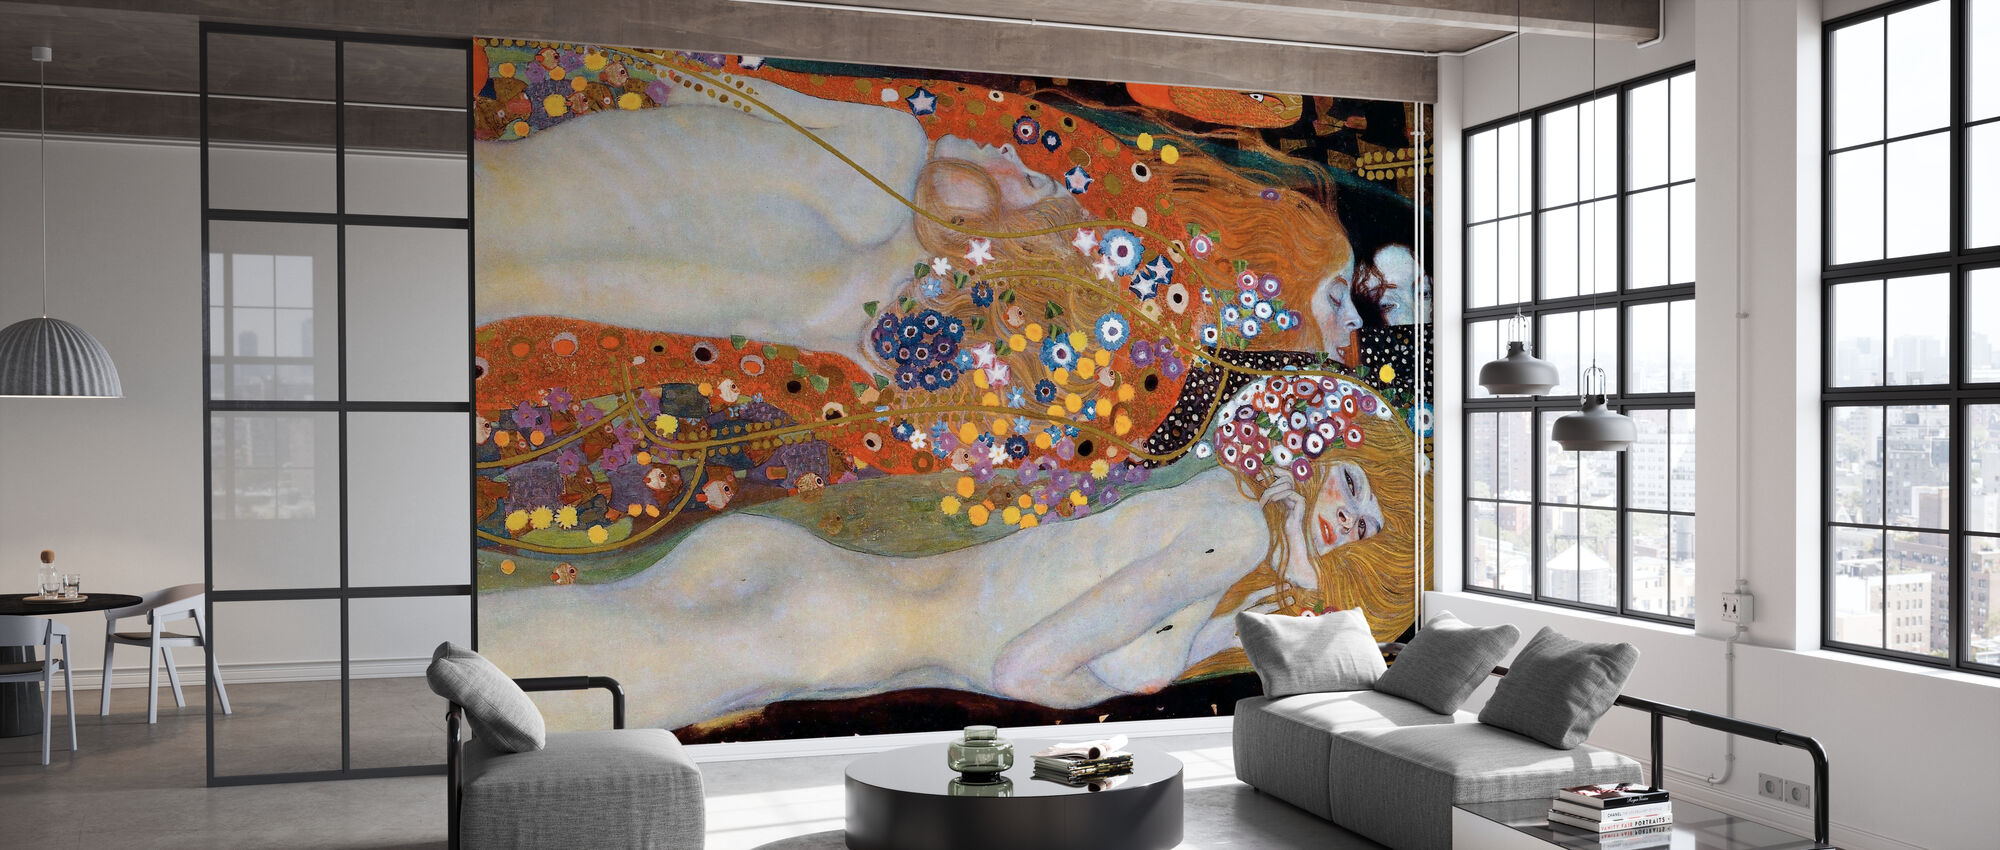 Water Serpents - Gustav Klimt - Wallpaper - Office